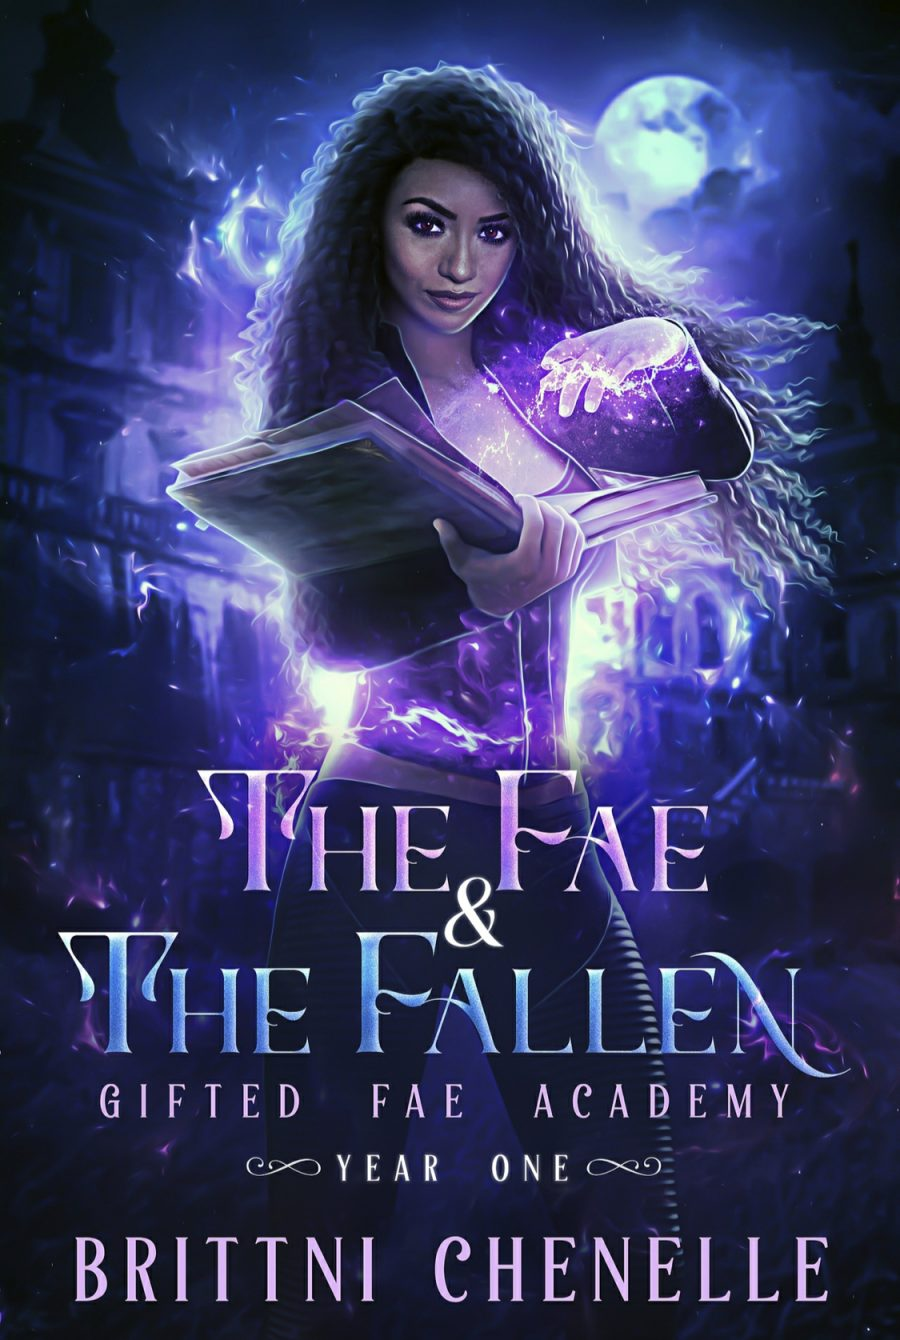 The Fae & The Fallen (Gifted Fae Academy - Book 1) by Brittni Chenelle - A Book Review #BookReview #PNR #XMen #Academy #UpperYA #Cliffhanger #KindleUnlimited #KU